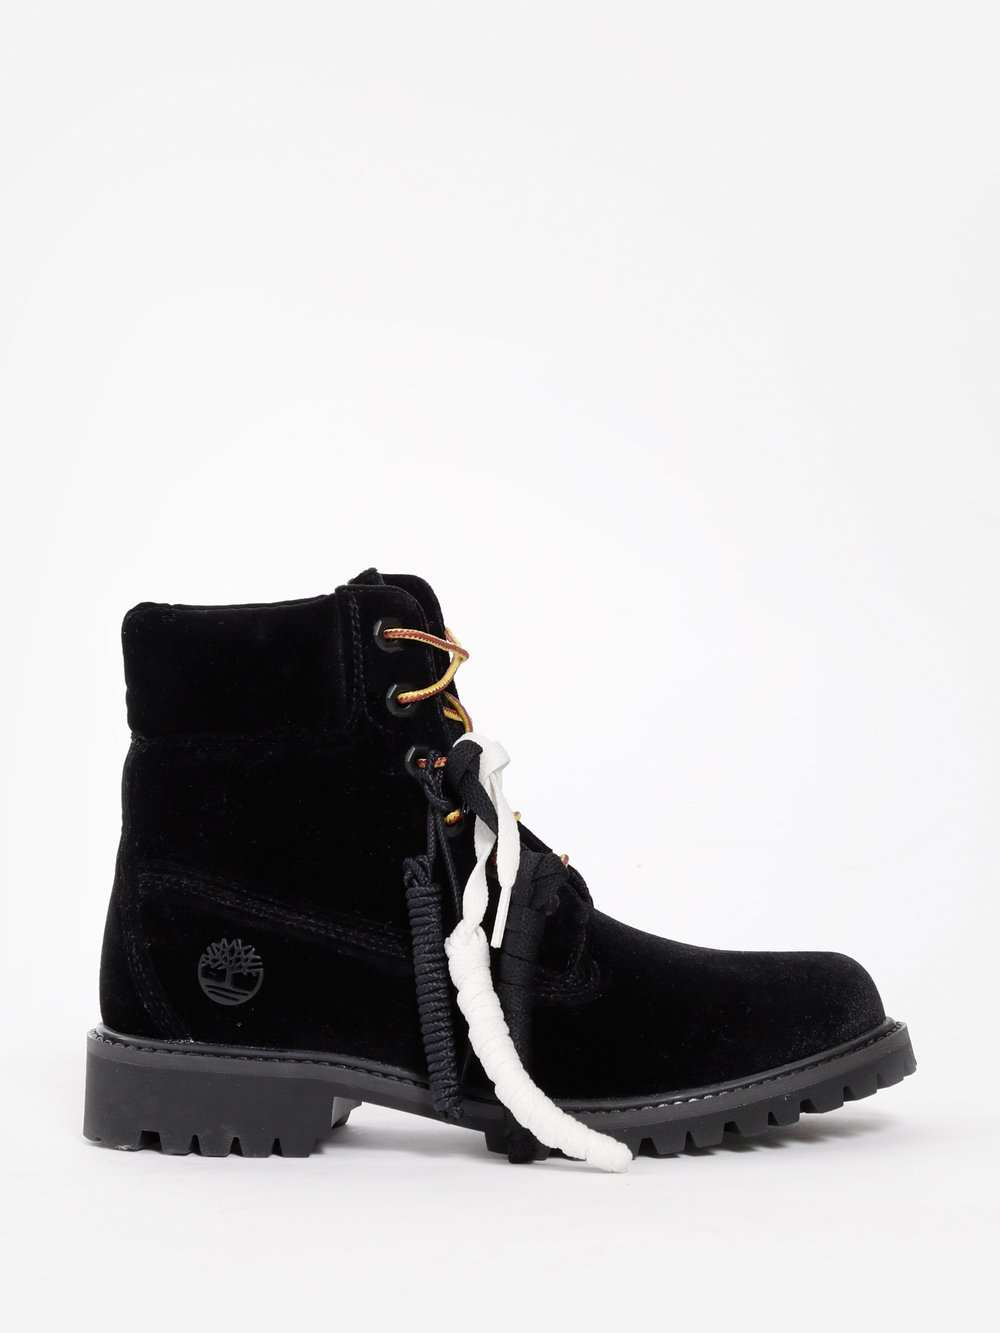 OFF WHITE C/O VIRGIL ABLOH X TIMBERLAND WOMEN'S BLACK BOOTS